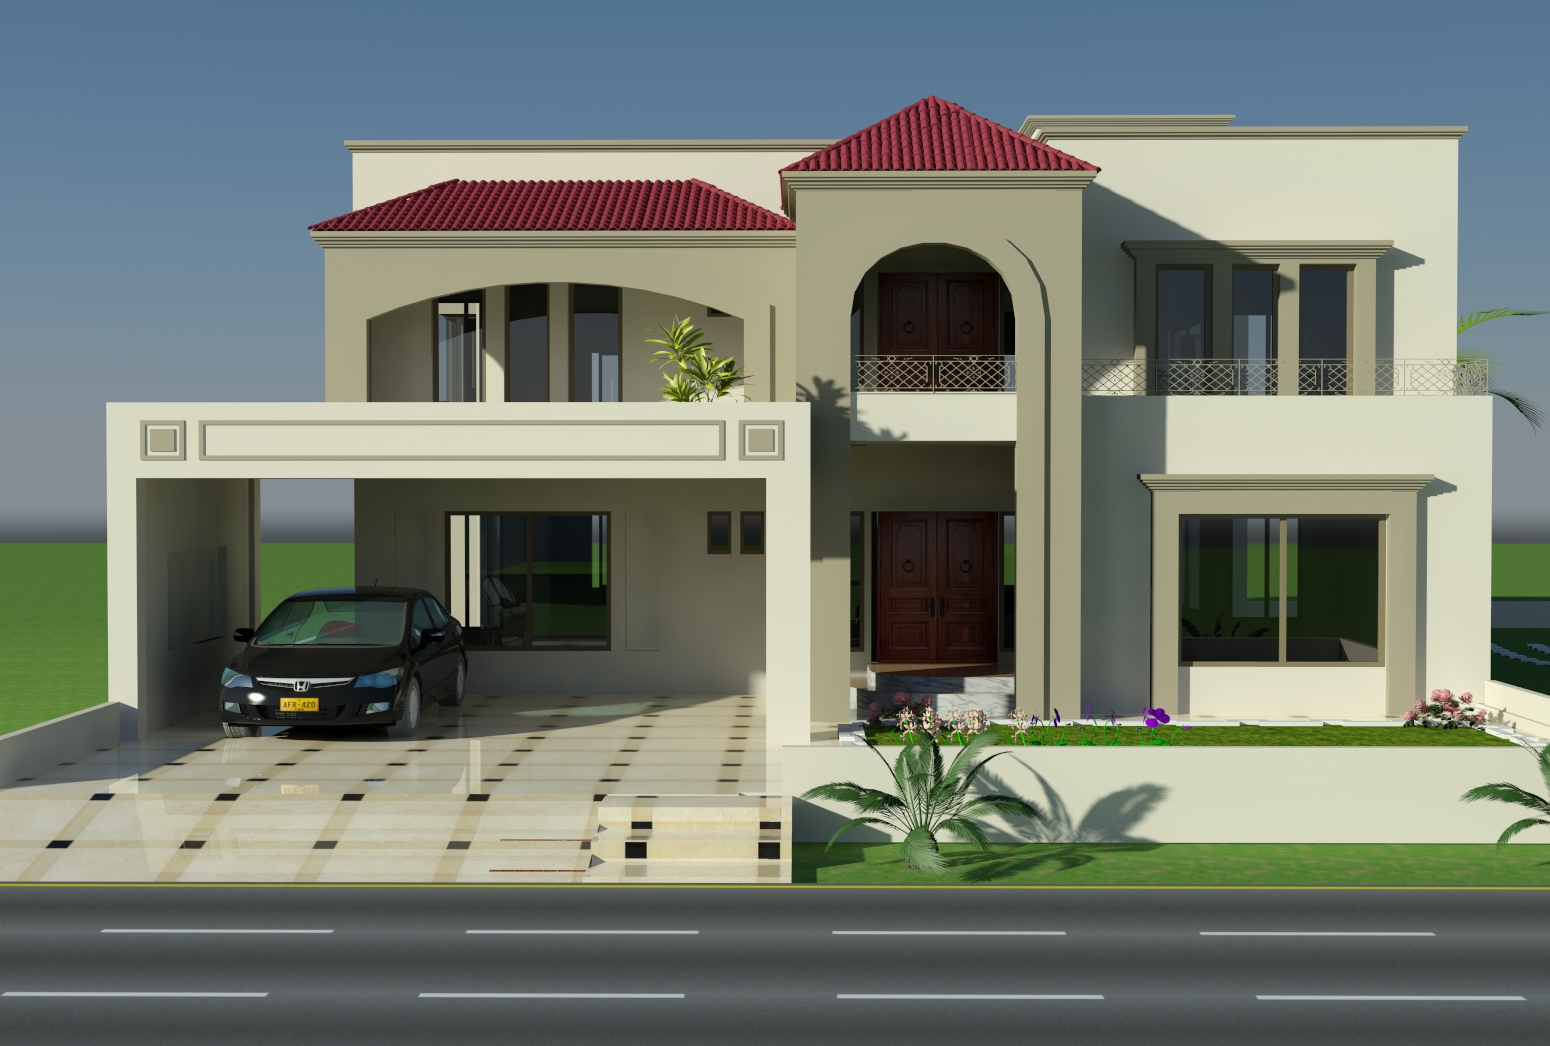 Home Design In Pakistan house designs in pakistan 7 awesome home design in pakistan Kanal Plot House Design Europen Style In Bahria Town Lahore Pakistan